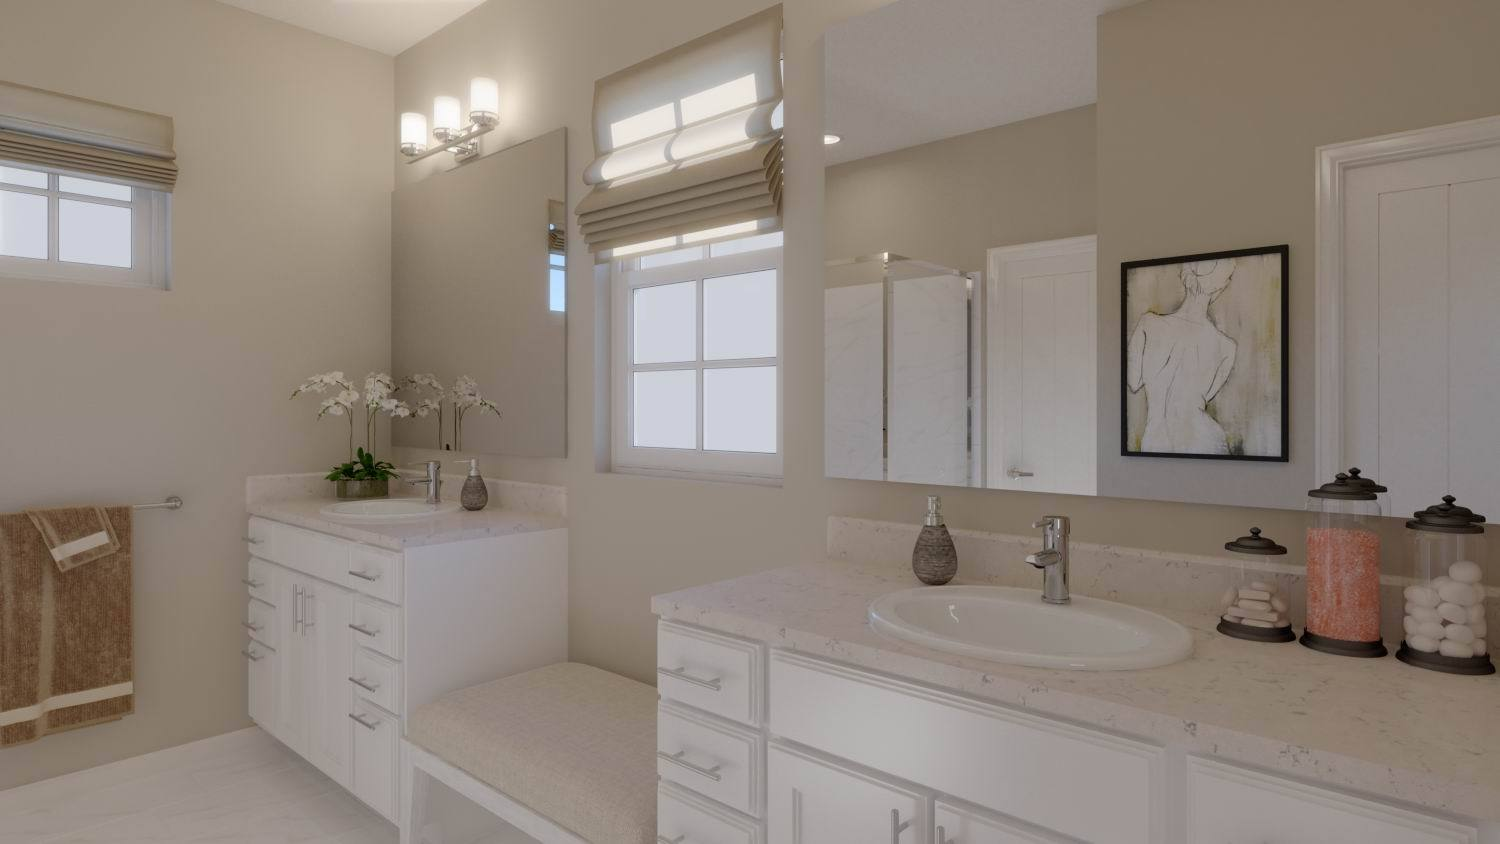 Bathroom featured in the Residence 3201 By TRI Pointe Homes in Denver, CO